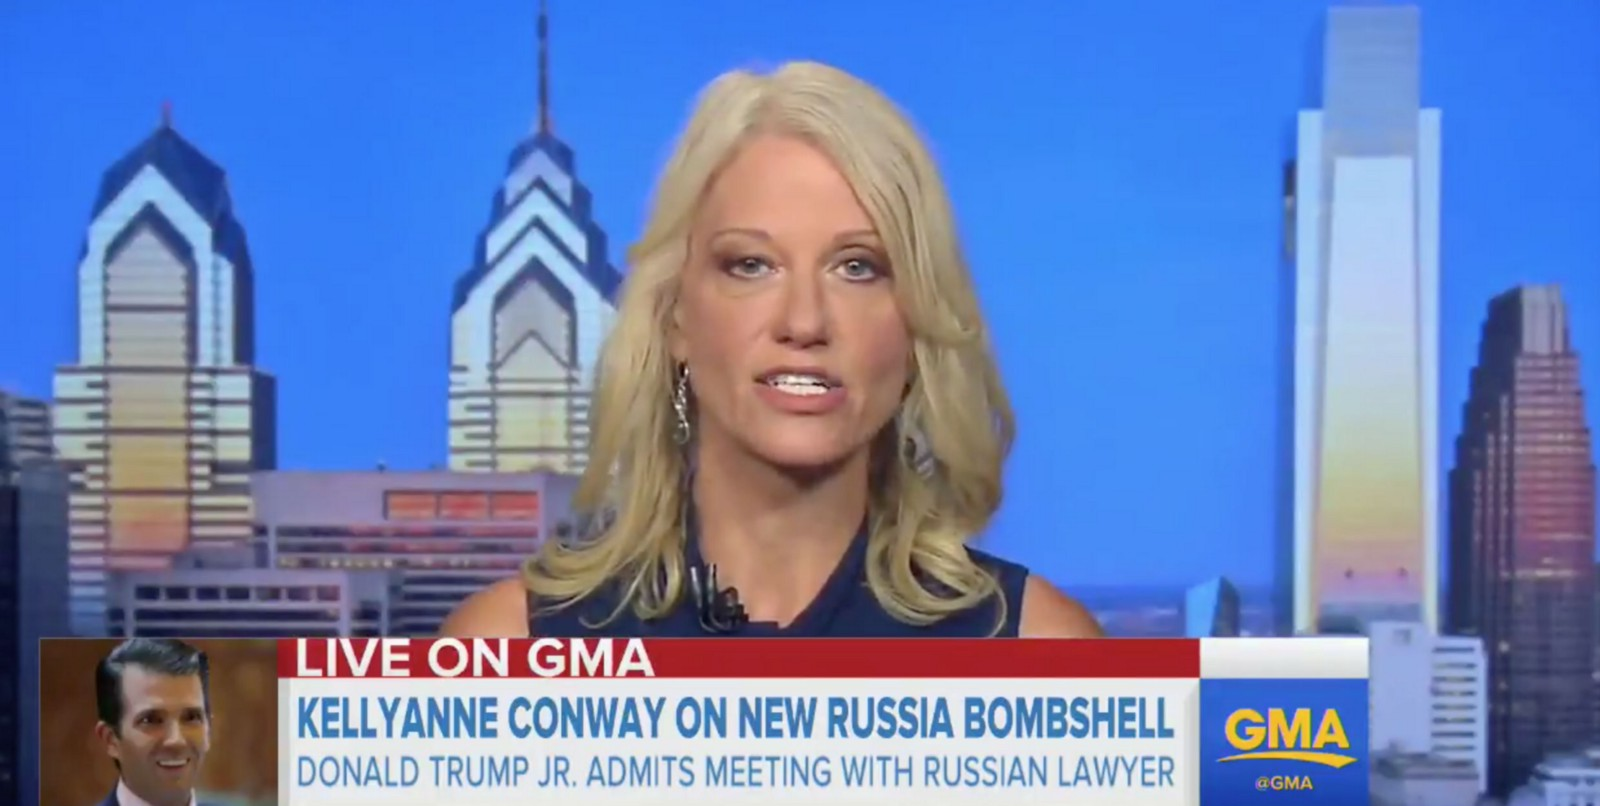 Kellyanne Conway Feuds With CNN's Chris Cuomo: 'You're Trying to Go Viral'